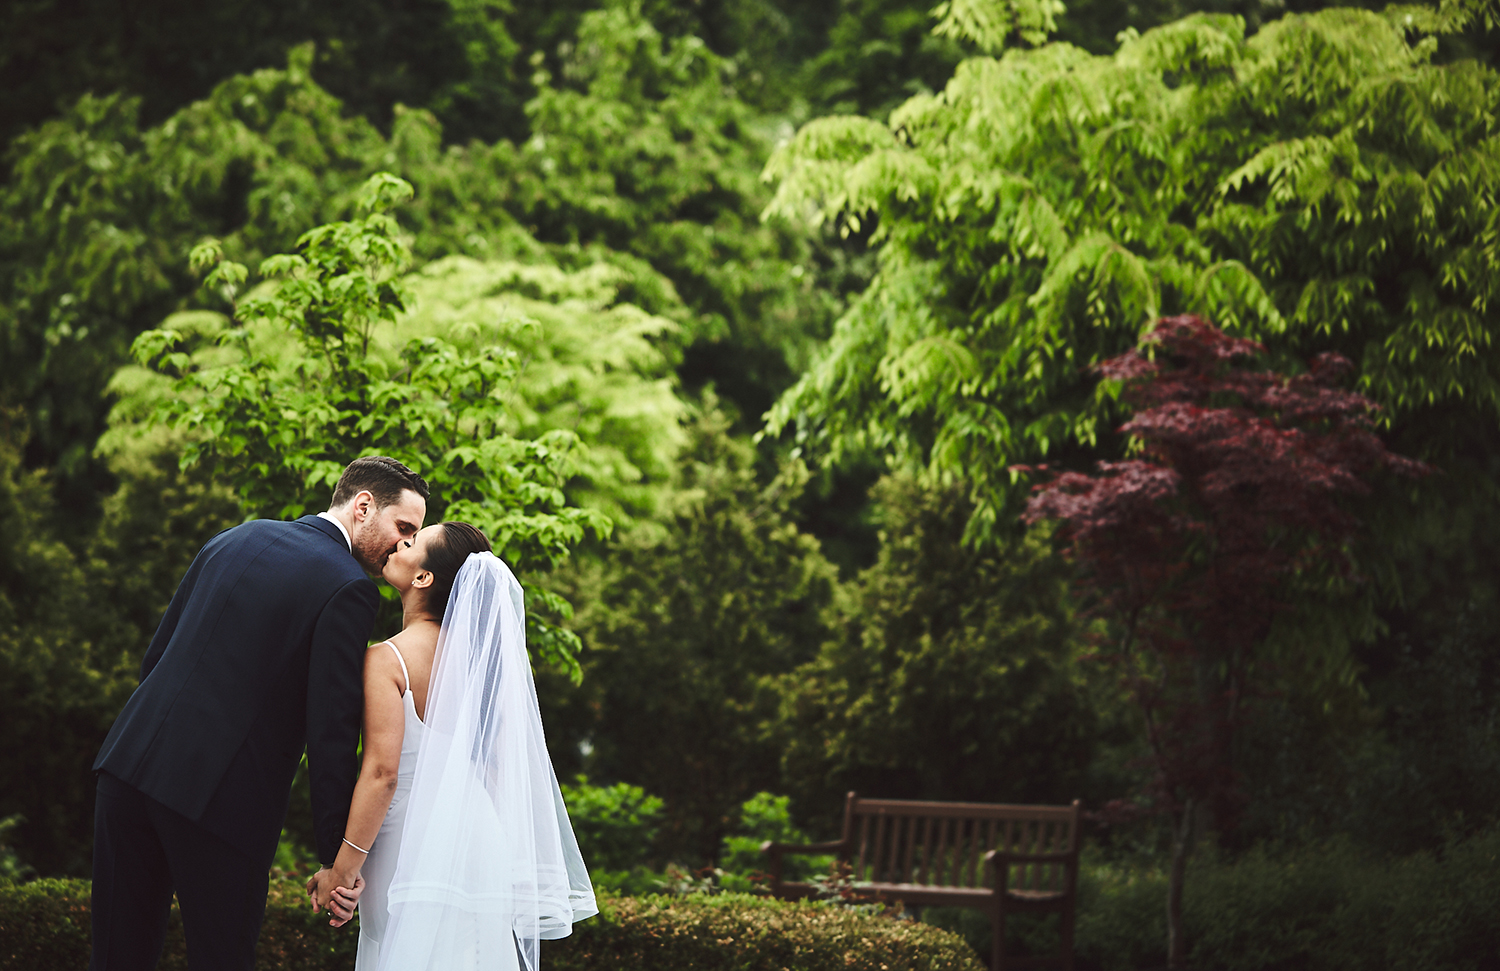 180519_PalaceatSomersetParkWeddingPhotography_NJWeddingPhotographer_By_BriJohnsonWeddings_0062.jpg